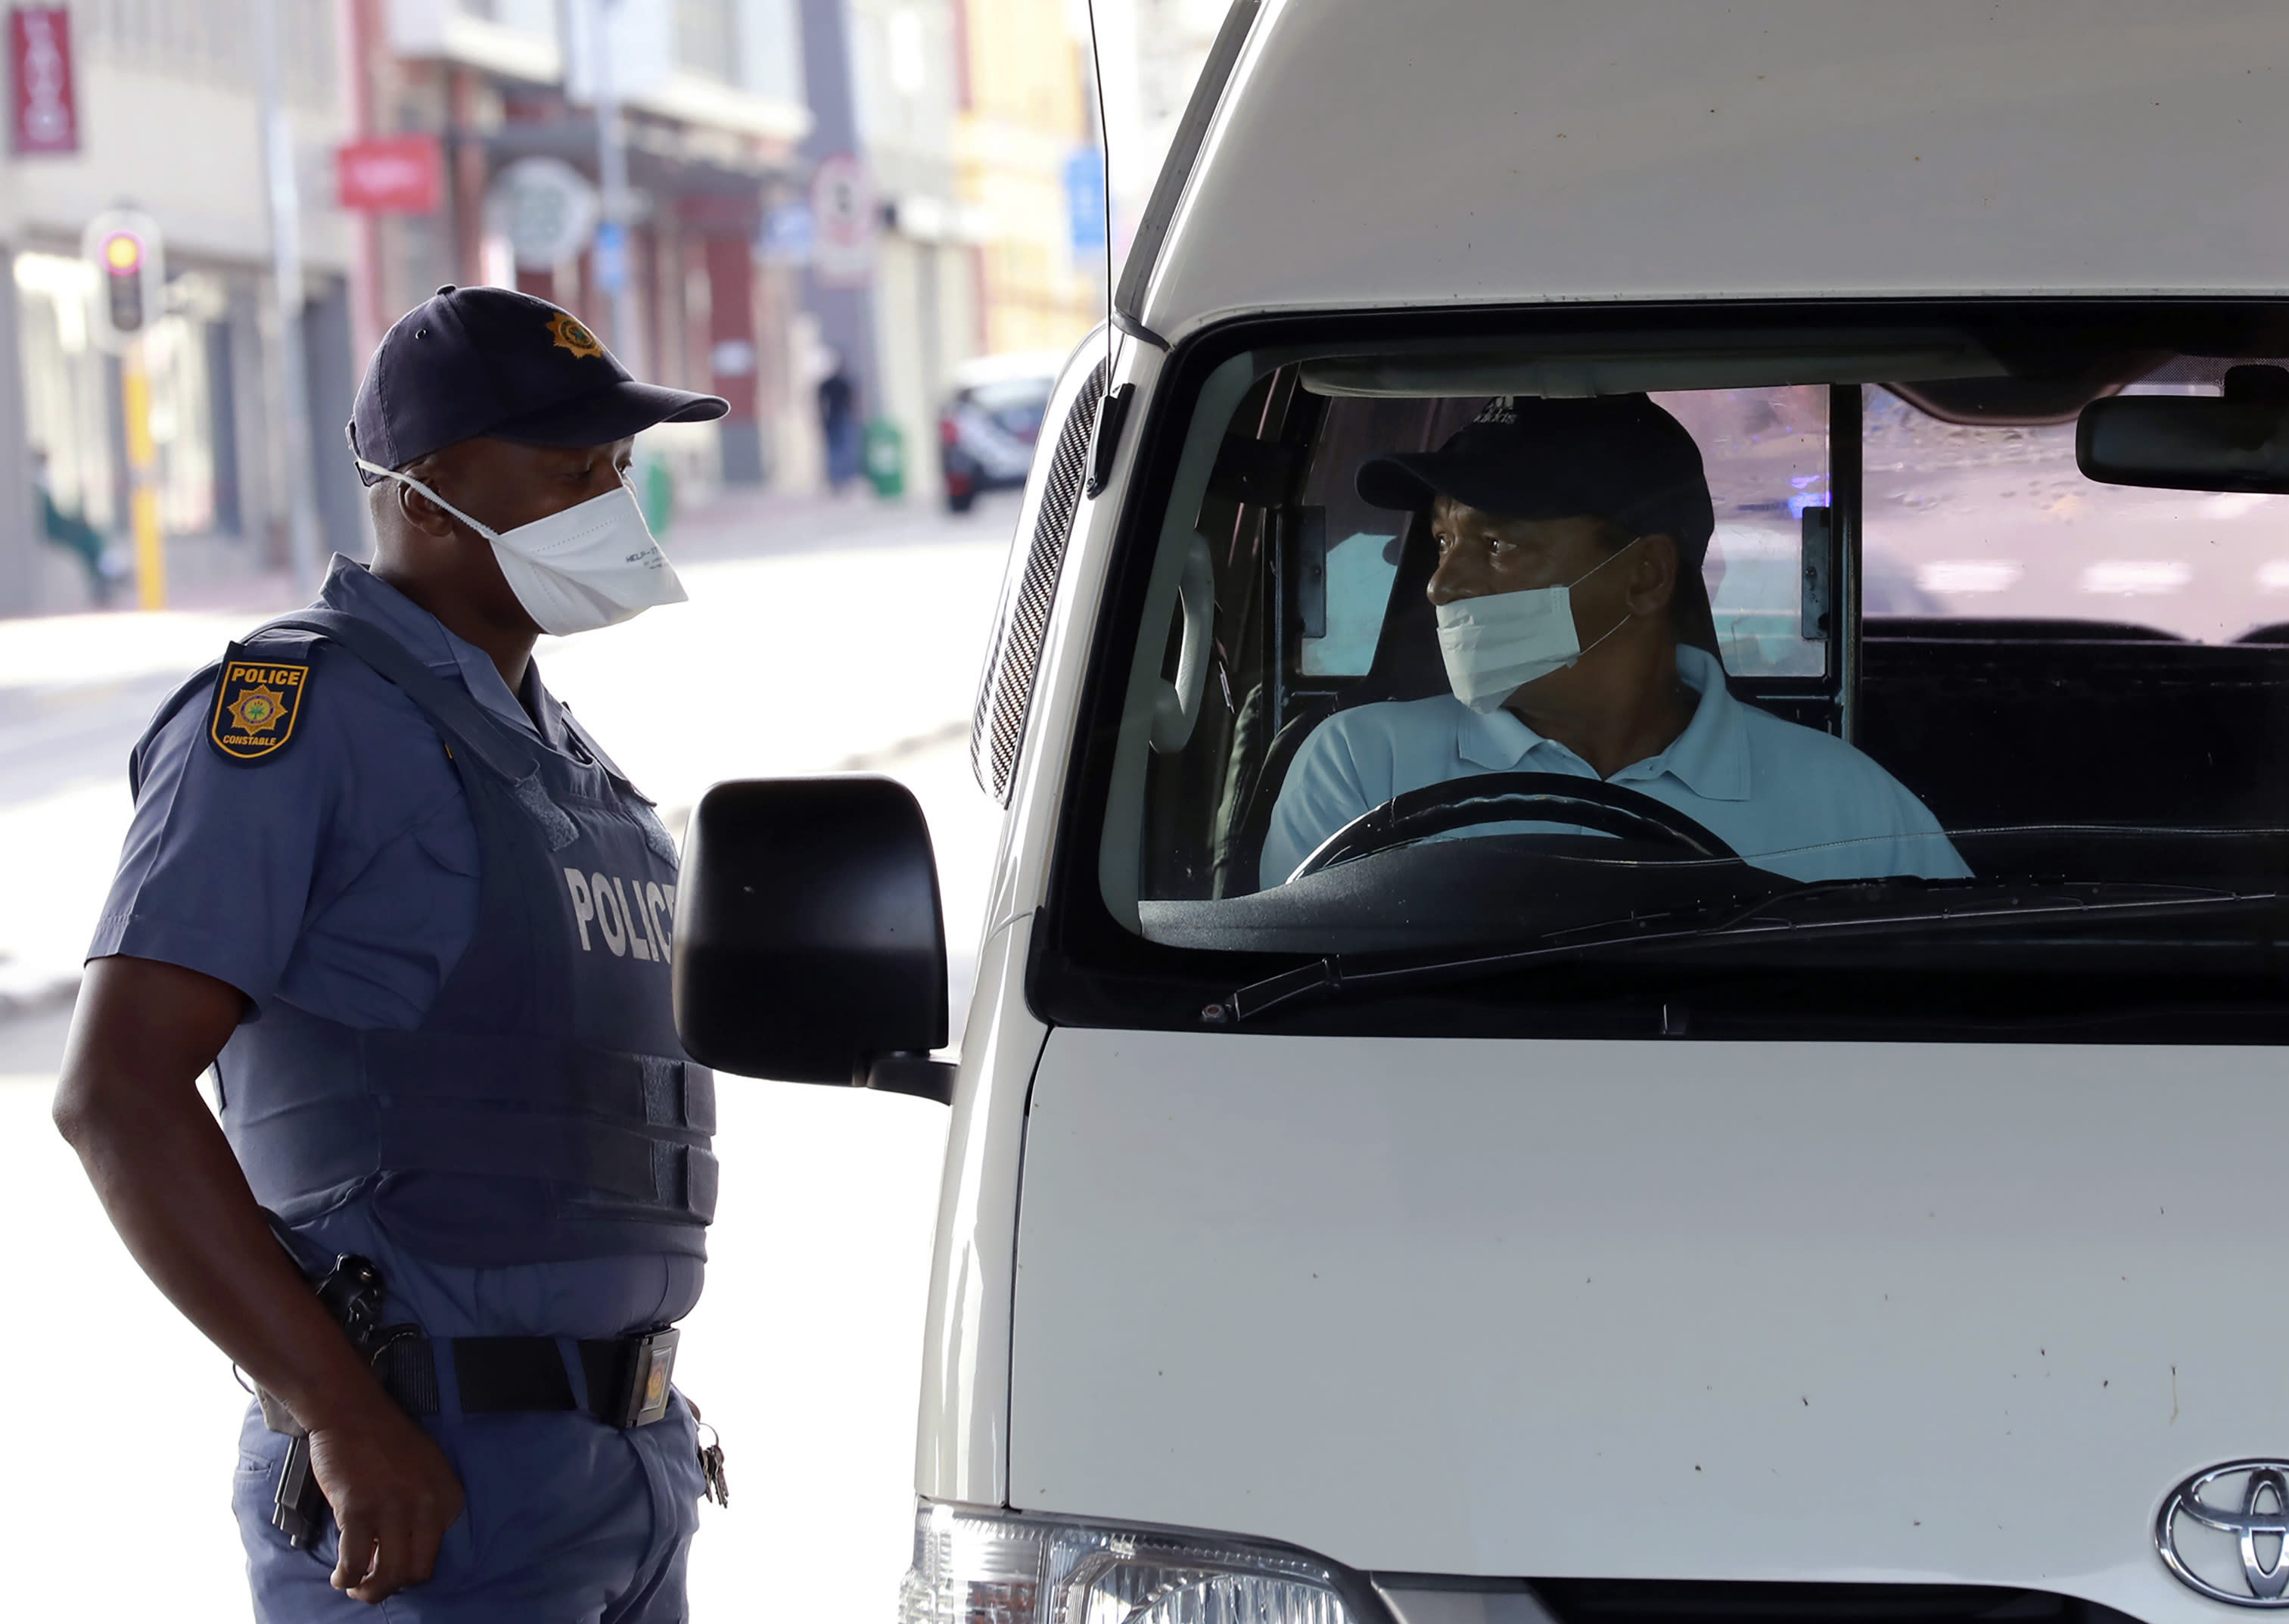 A policeman check the credentials of a motorist in Cape Town, South Africa, Friday, March 27, 2020, after South Africa went into a nationwide lockdown for 21 days in an effort to mitigate the spread to the coronavirus. The new coronavirus causes mild or moderate symptoms for most people, but for some, especially older adults and people with existing health problems, it can cause more severe illness or death(AP Photo/Nardus Engelbrecht)